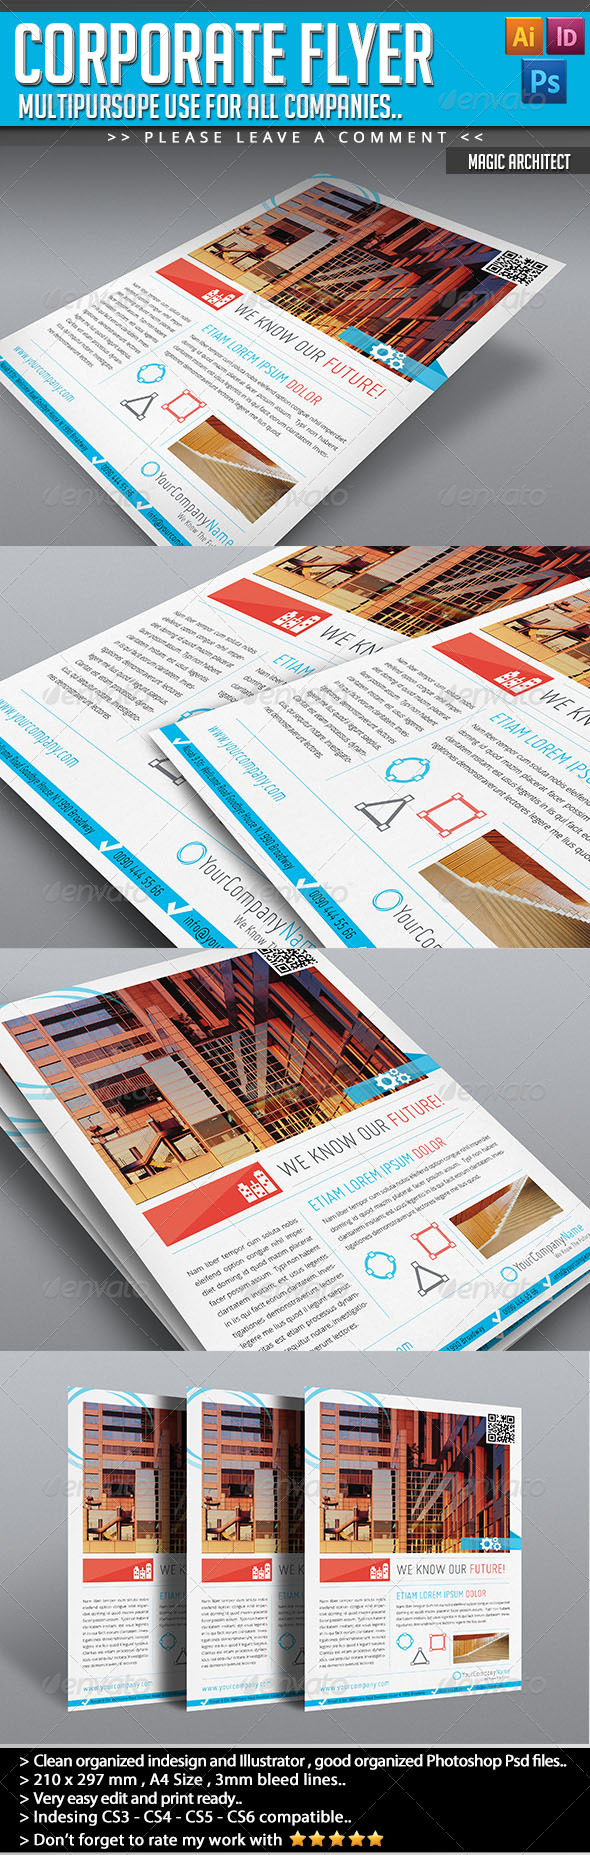 GraphicRiver Corporate Flyer Happy Clients 4630224